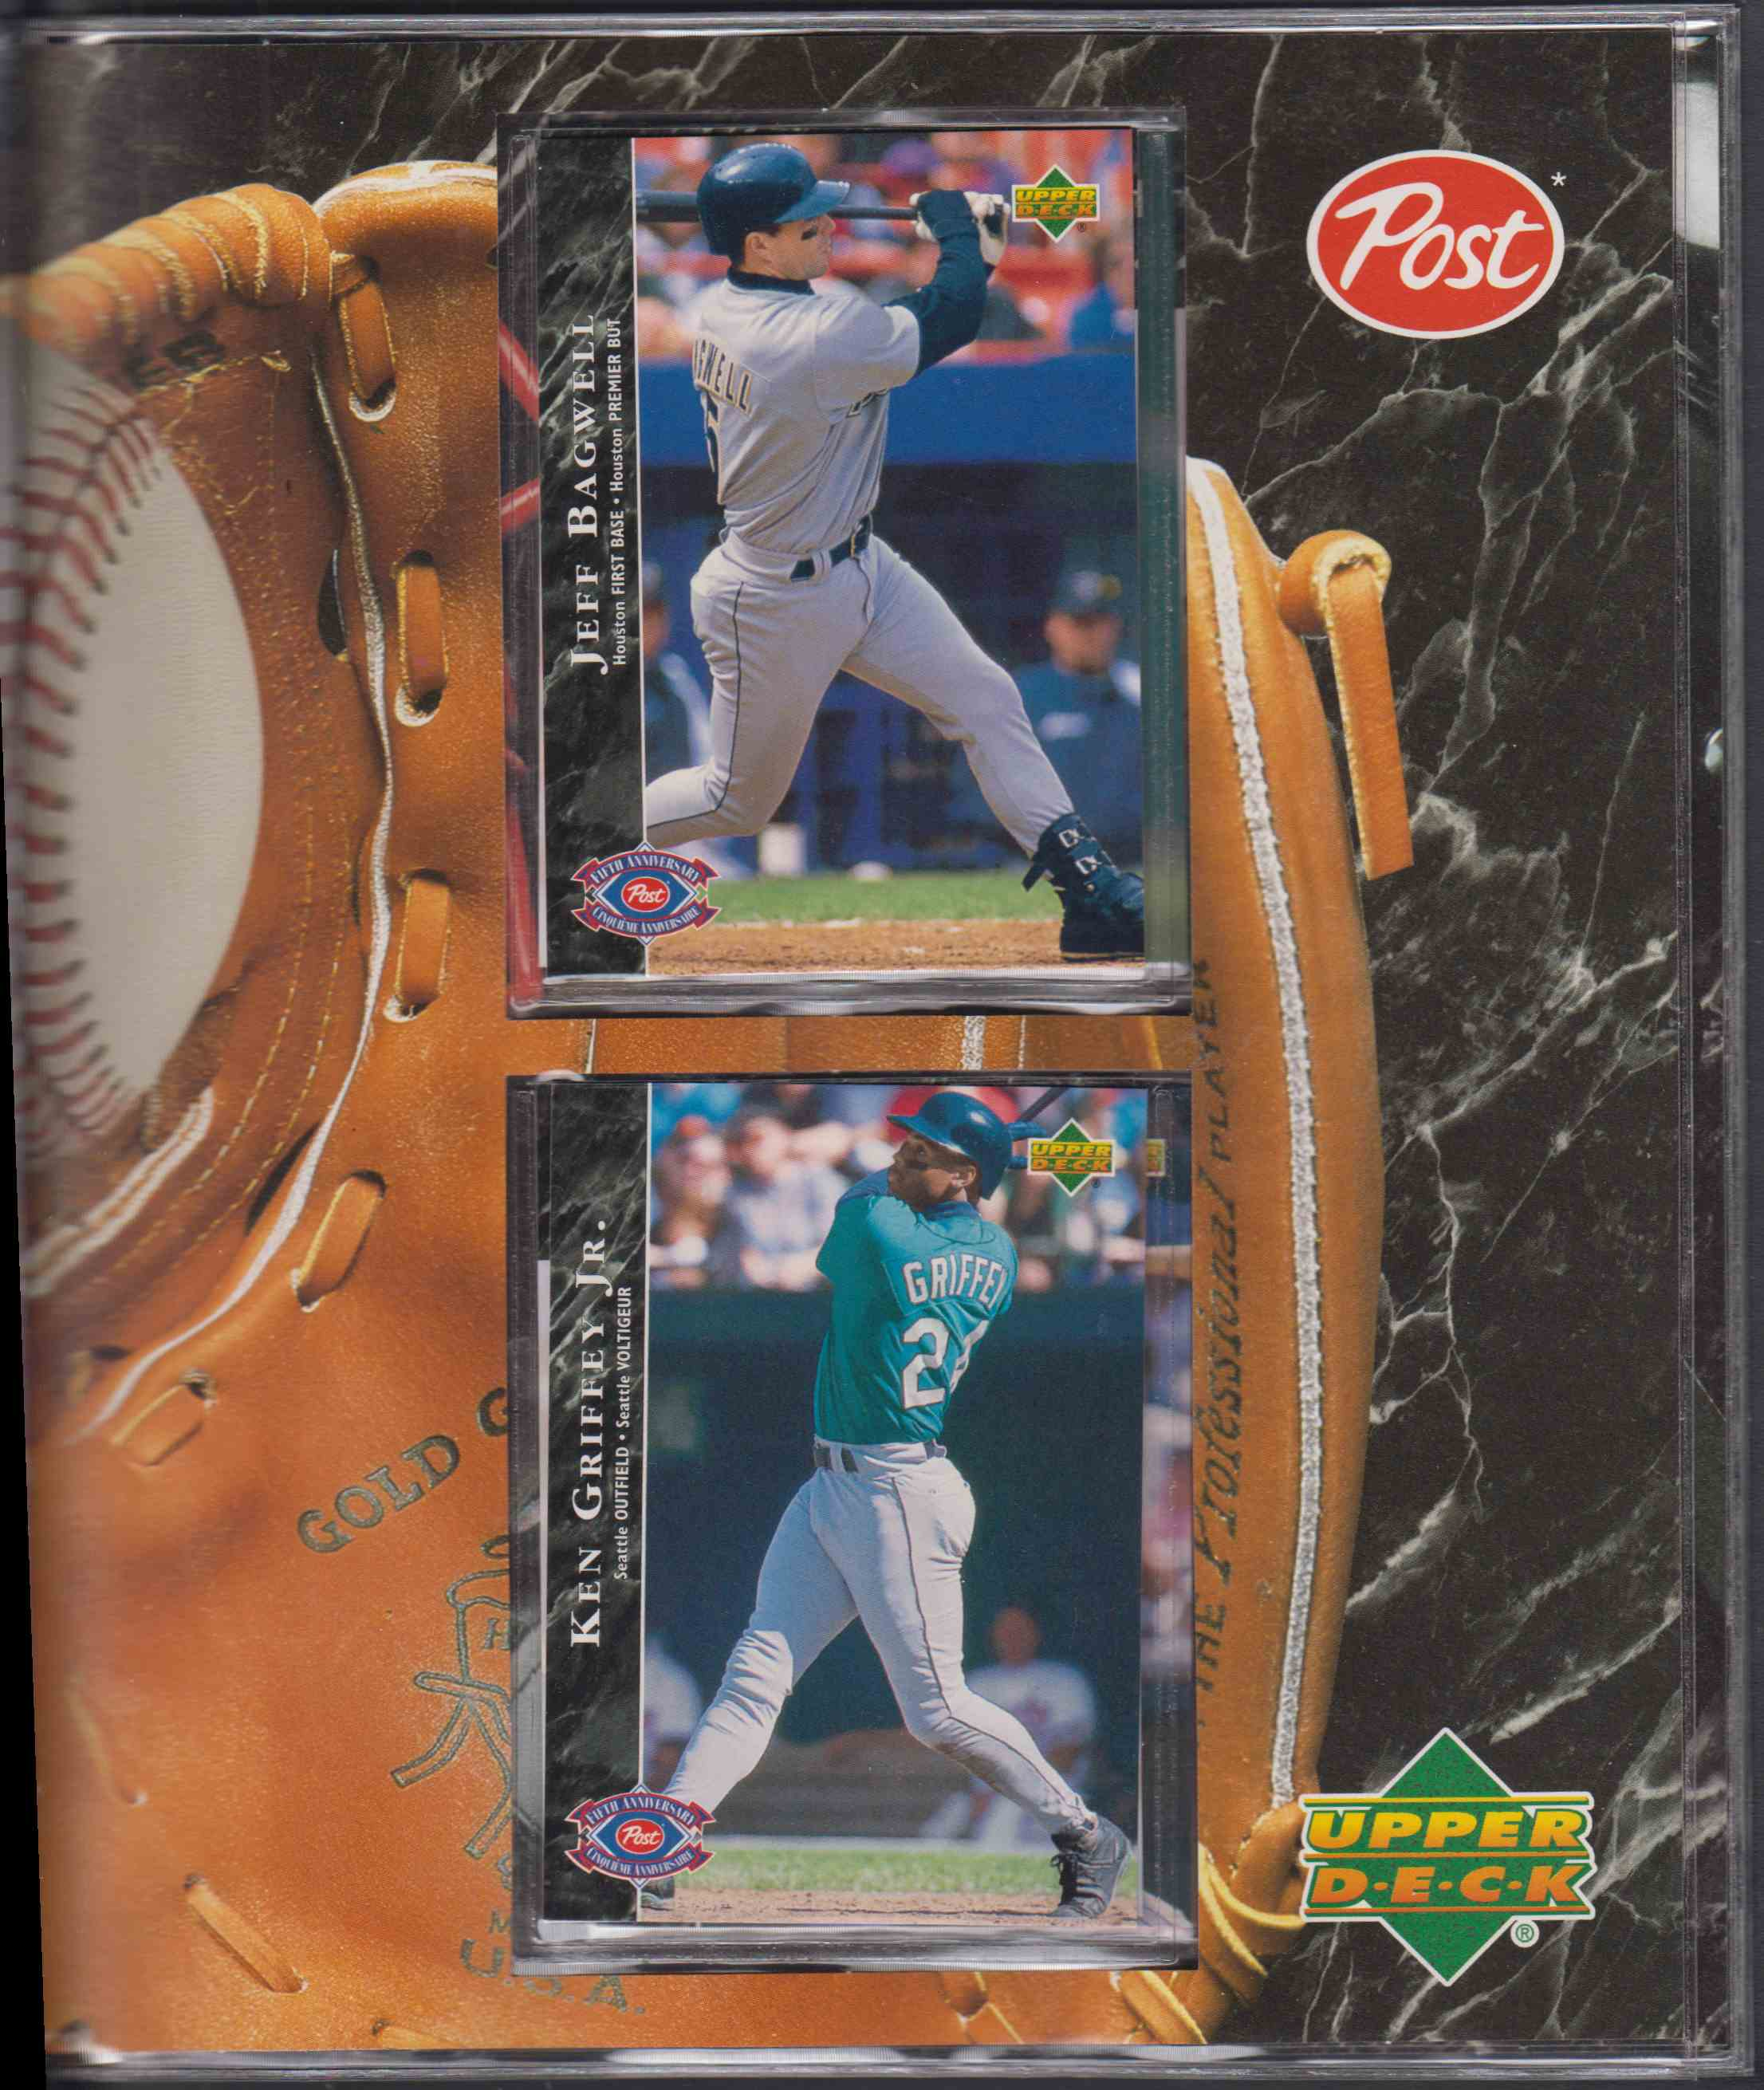 1995 Post Canadian Ken Griffey, Cal Ripken Jr, Etc. card back image